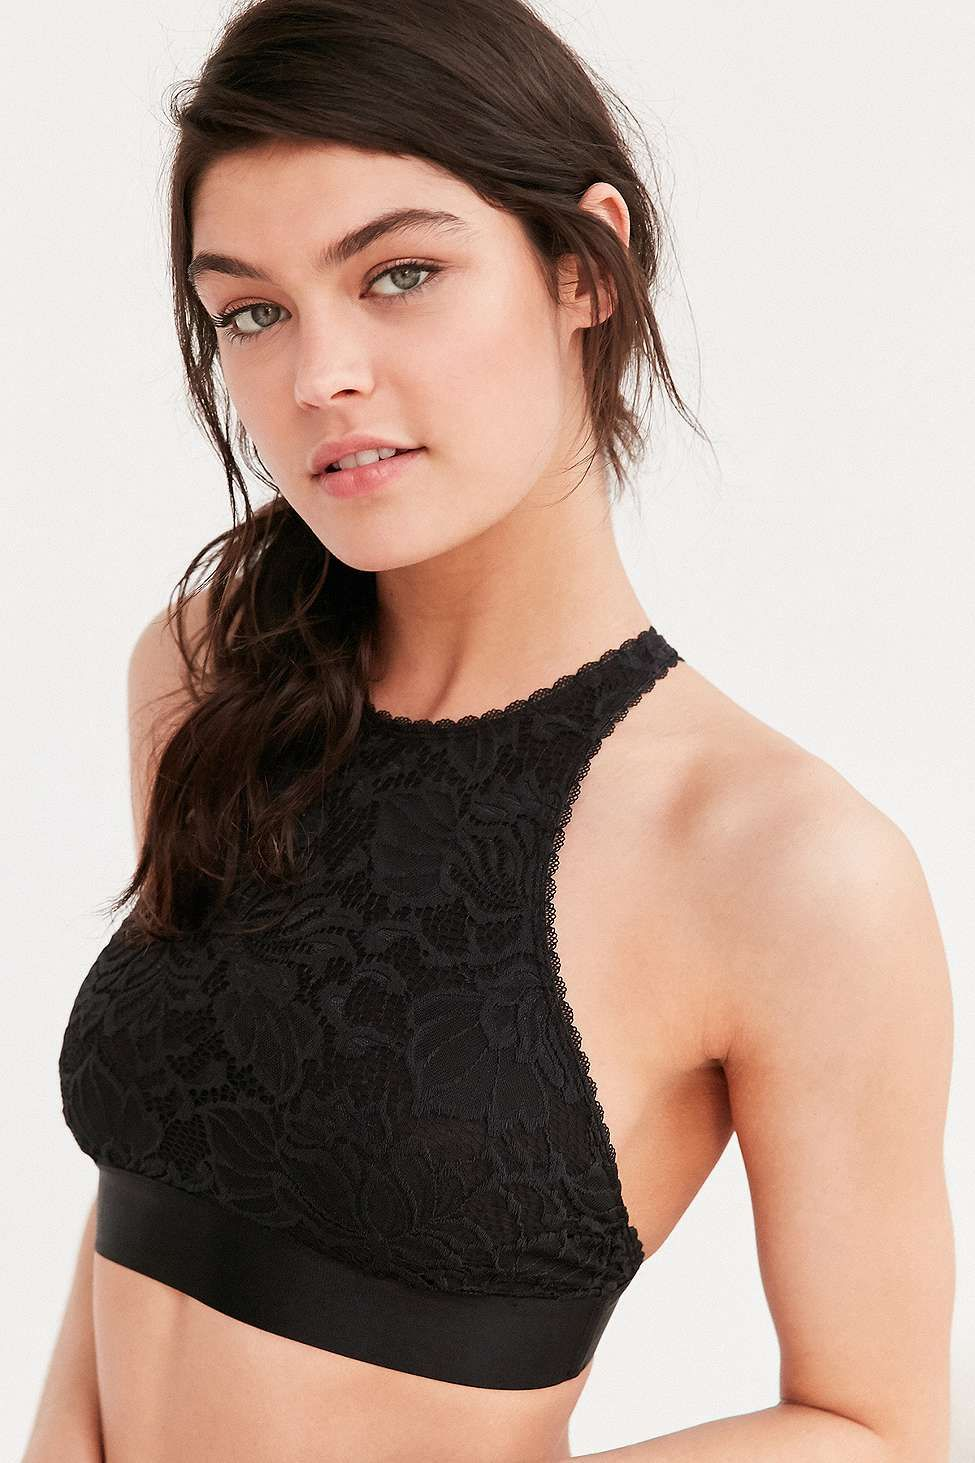 337657c60cfa4 Out From Under Katia Lace High Neck Bra | Glad Rags x | High neck ...